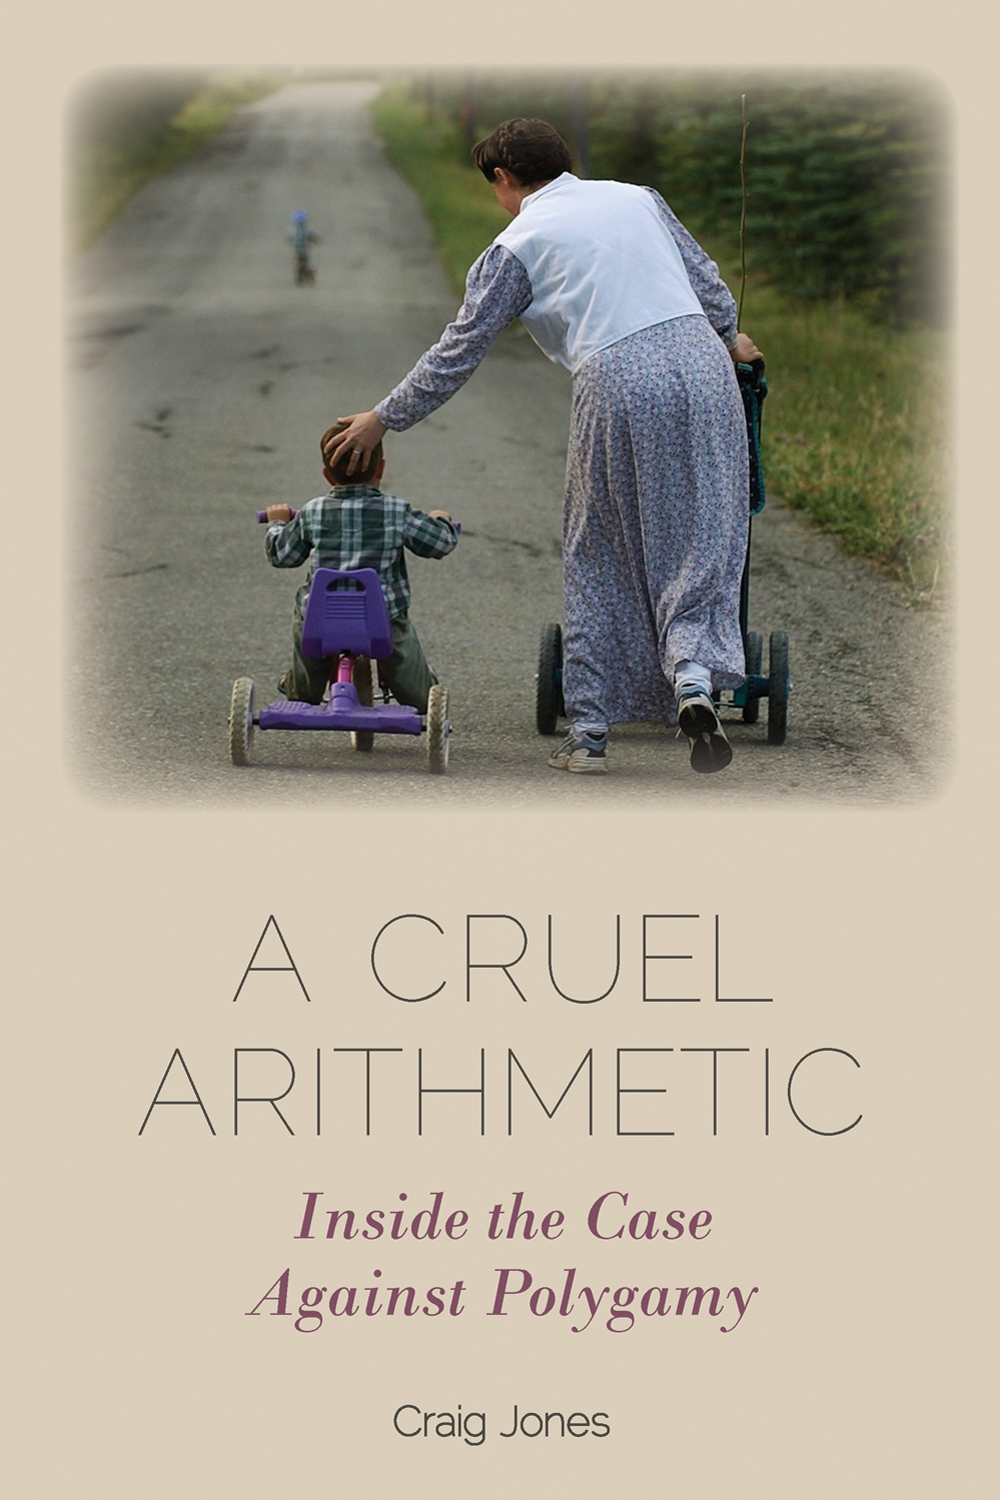 Book cover for A Cruel Arithmetic by Craig Jones, showing a child riding a tricycle and a woman pushing a stroller from behind.